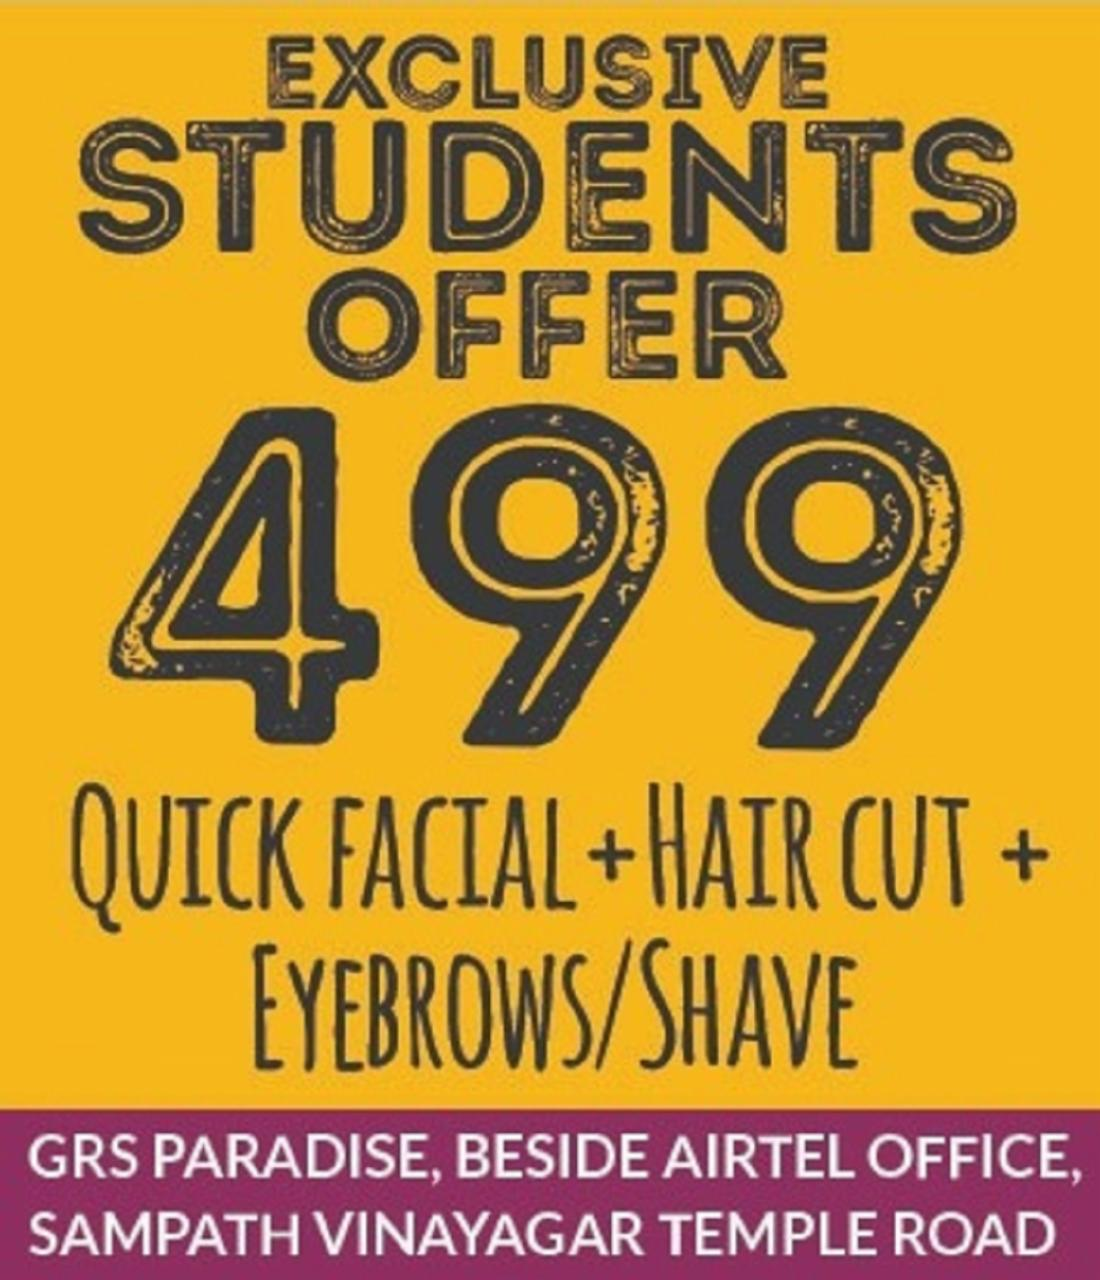 Exclusive Student Offer at Just 499 - Hiwaga Salon